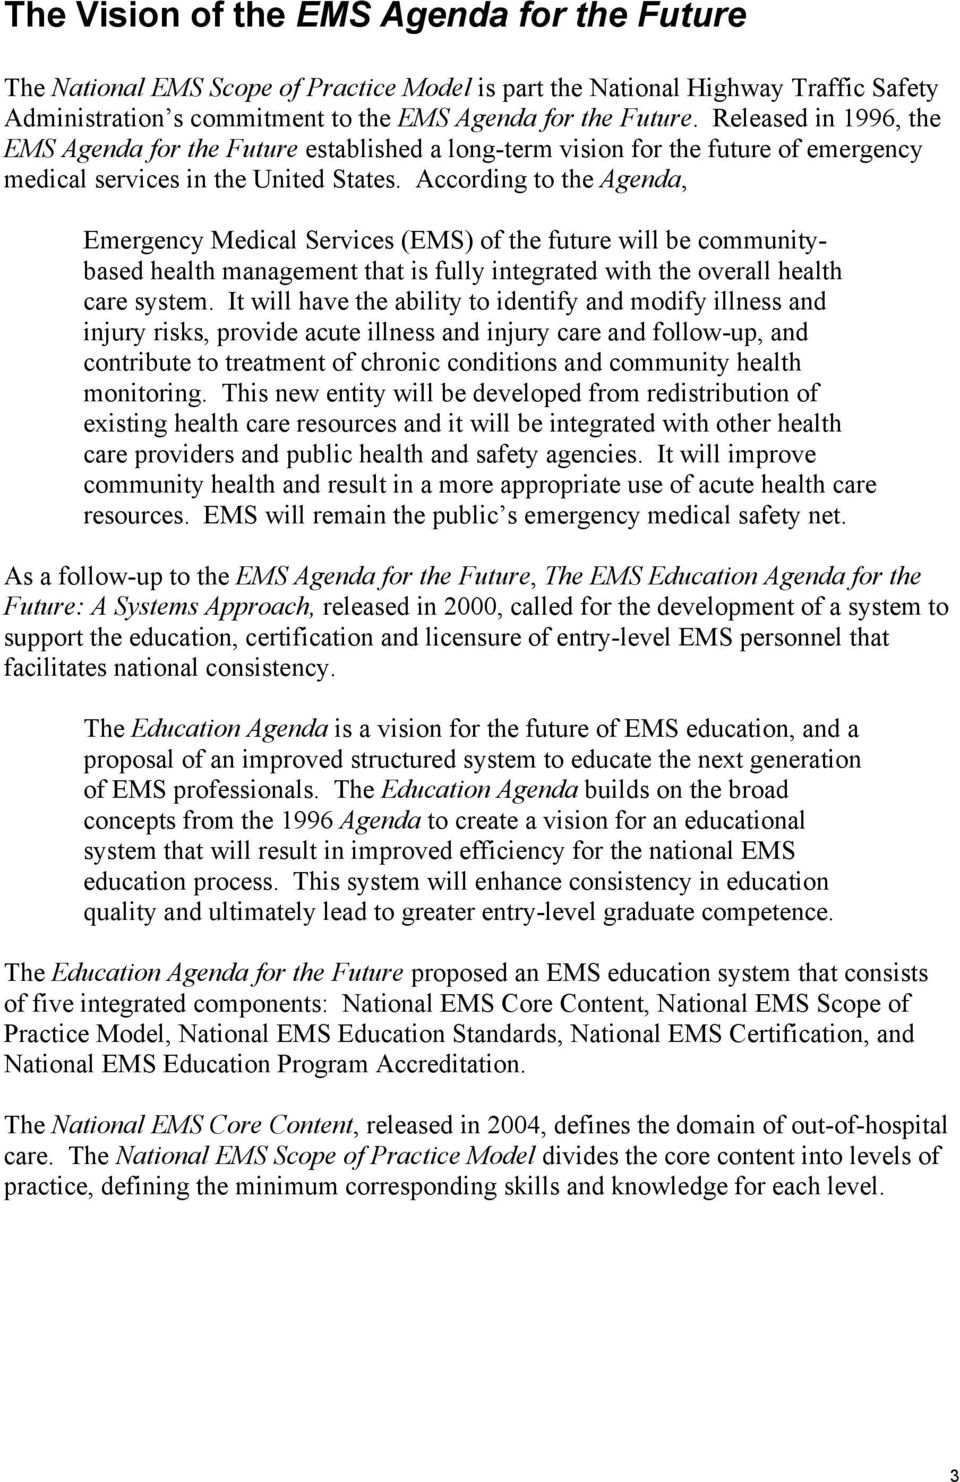 According to the Agenda, Emergency Medical Services (EMS) of the future will be communitybased health management that is fully integrated with the overall health care system.